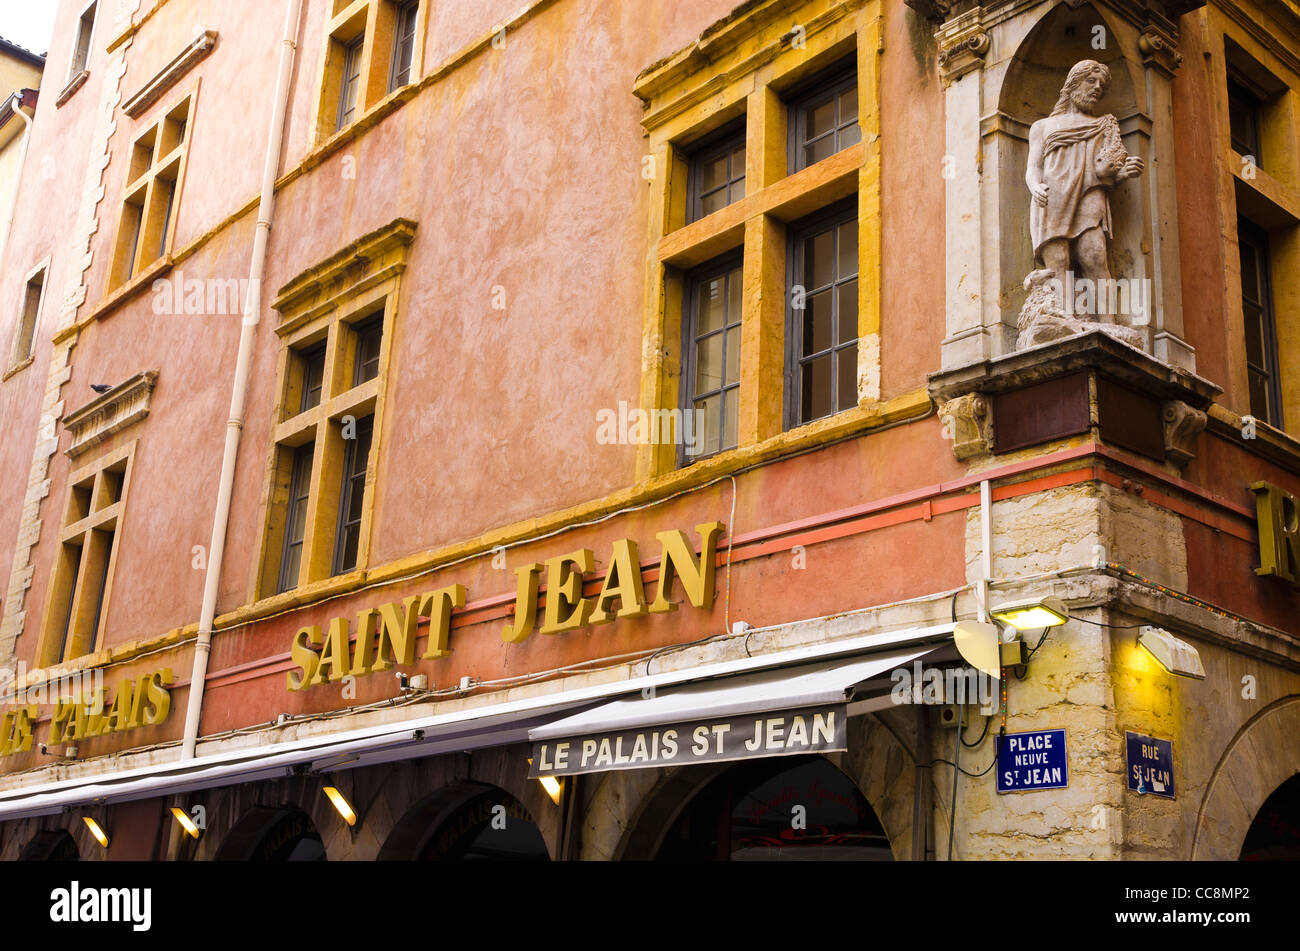 restaurant in old town vieux lyon france unesco world heritage stock photo royalty free image. Black Bedroom Furniture Sets. Home Design Ideas